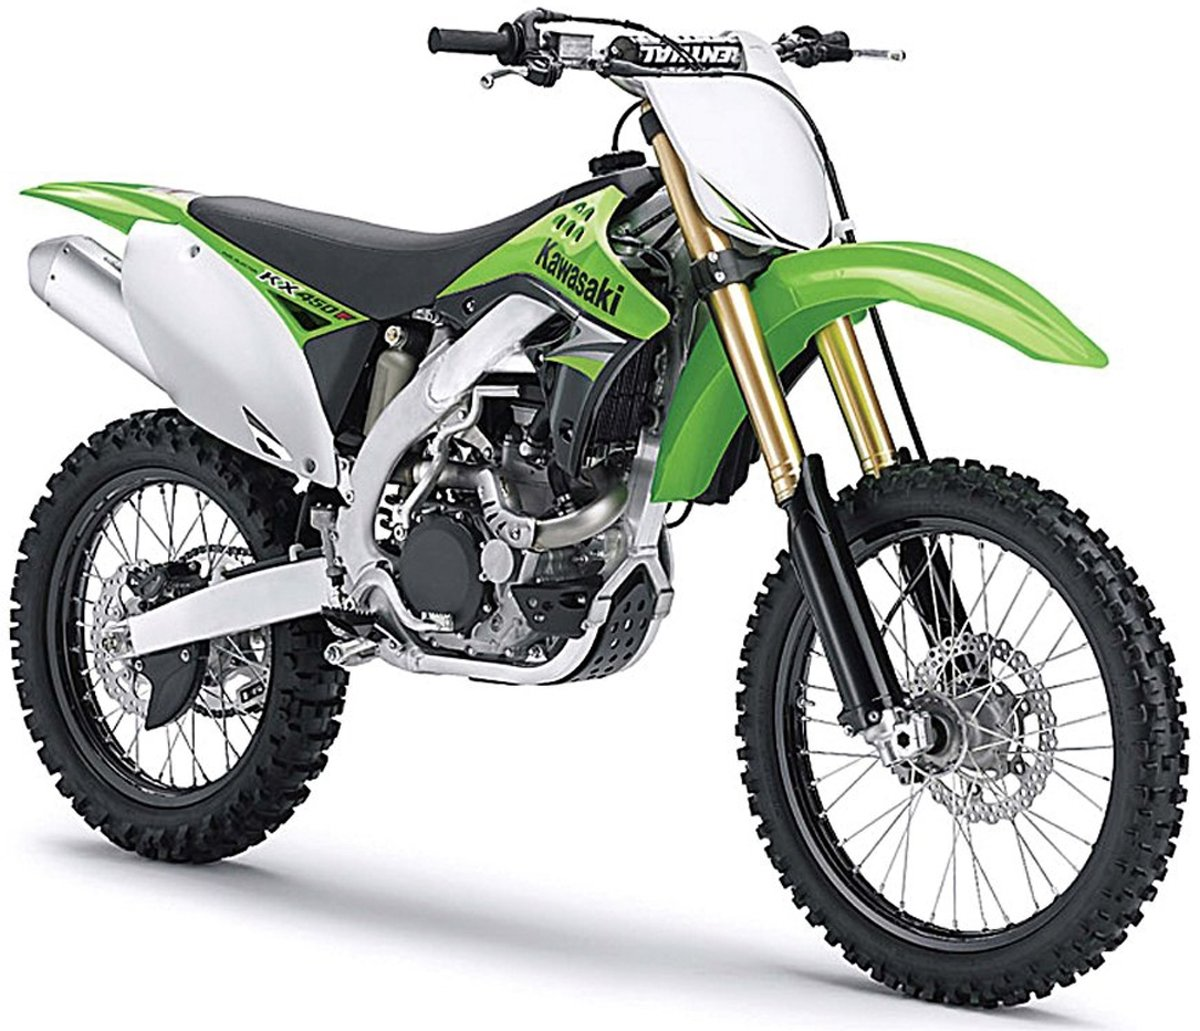 New-Ray Kawasaki KX450F 1:6 49403